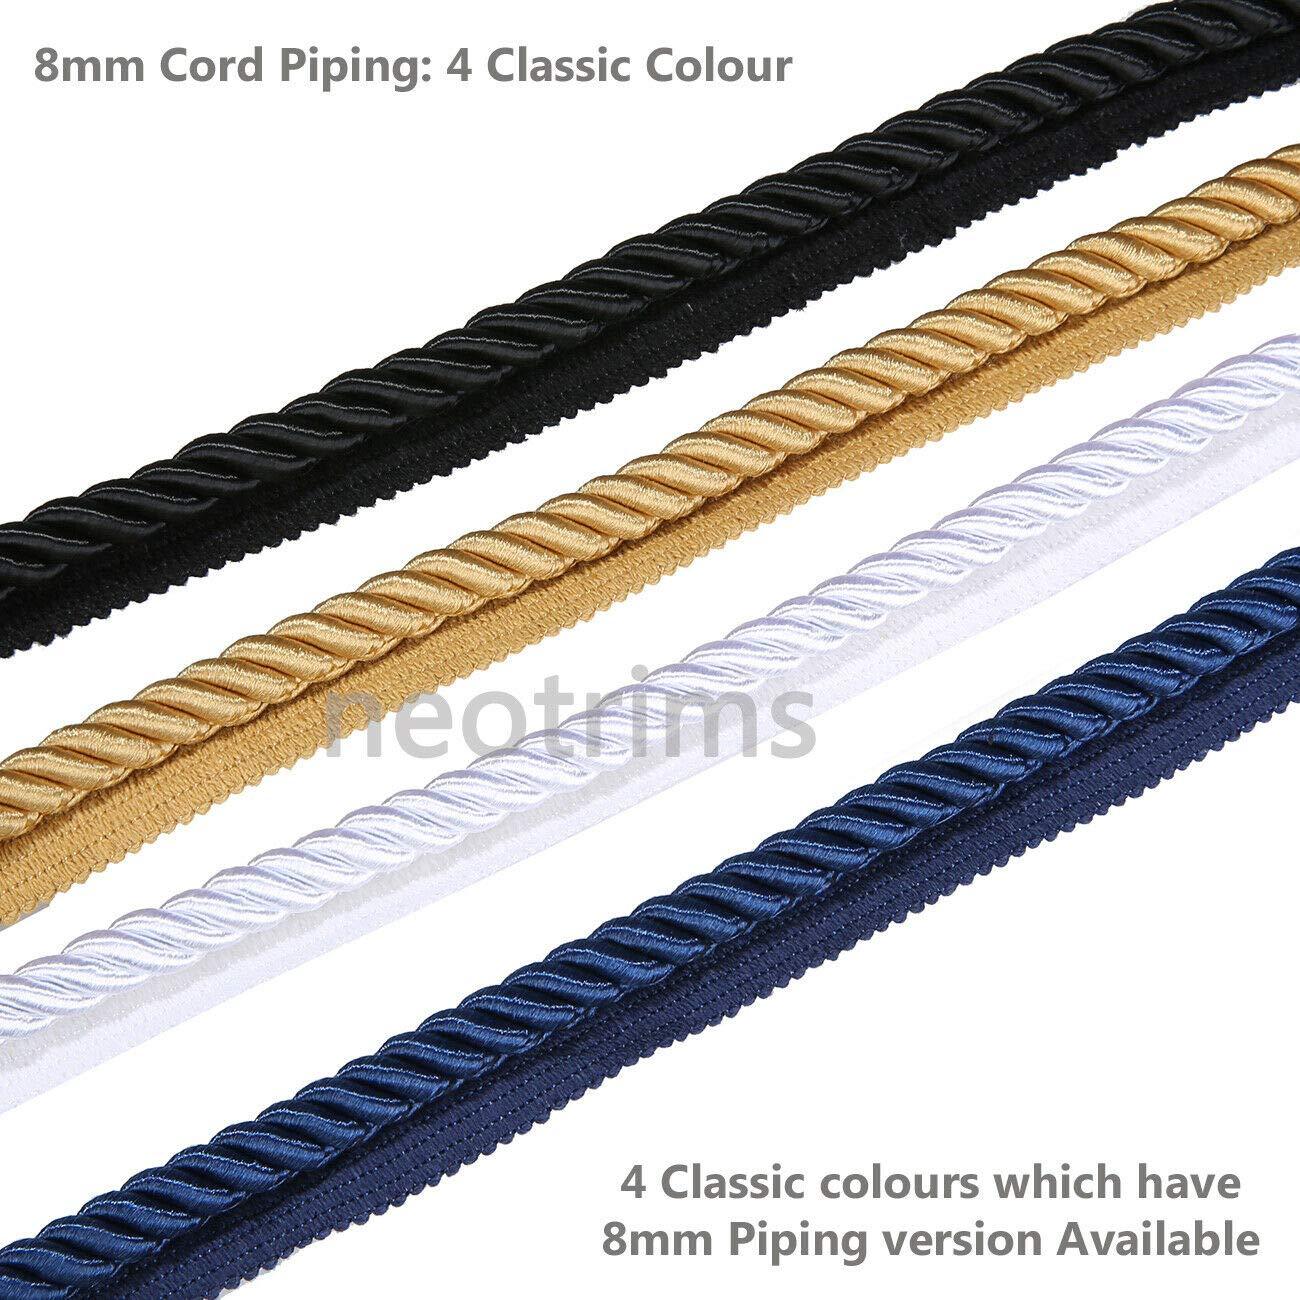 6mm Silky Barley Twist Cord /& 16mm Flanged Insertion Piping Upholstery Crafts Trimming Neotrims 36 Colors High Strength Durable /& Versatile